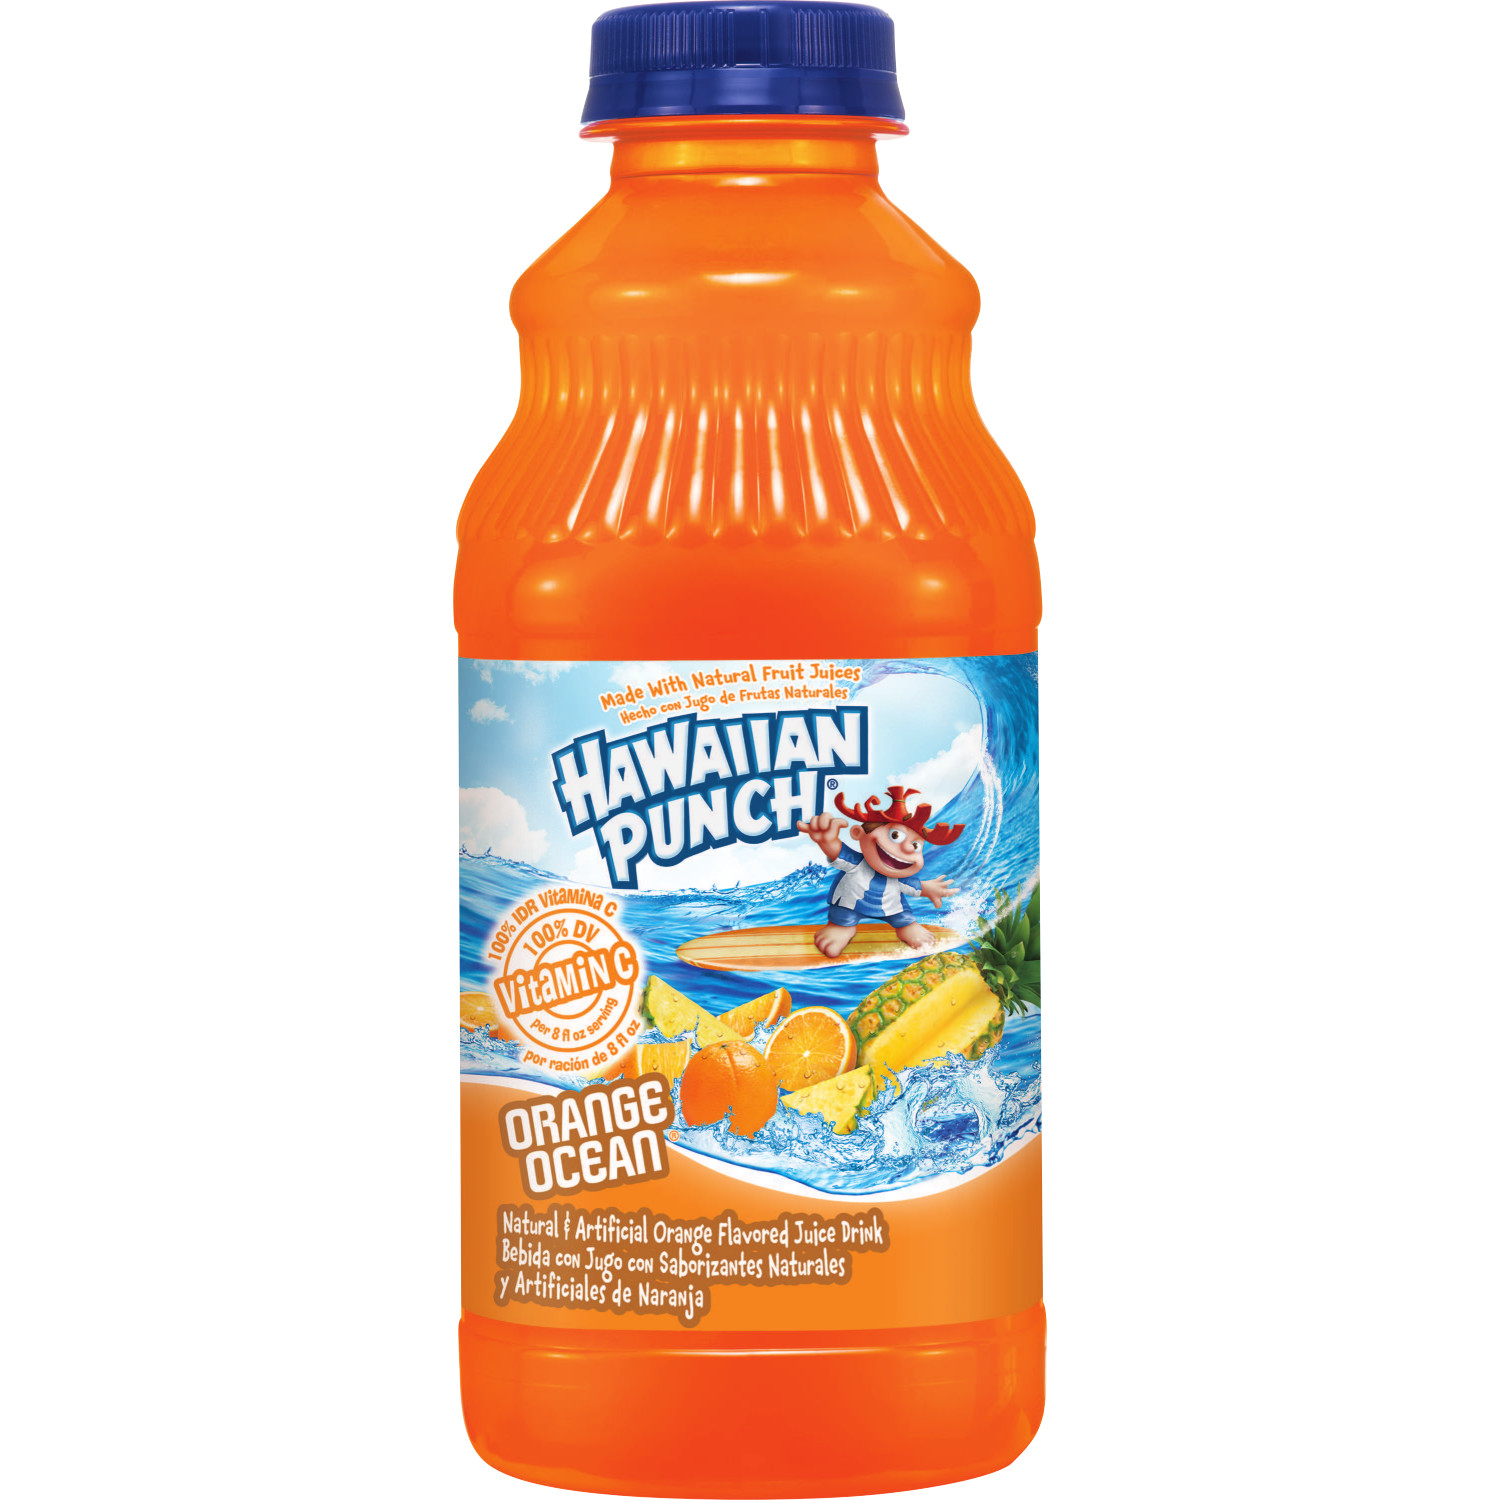 Hawaiian Punch Orange Ocean, 32 fl oz bottle,12 Count